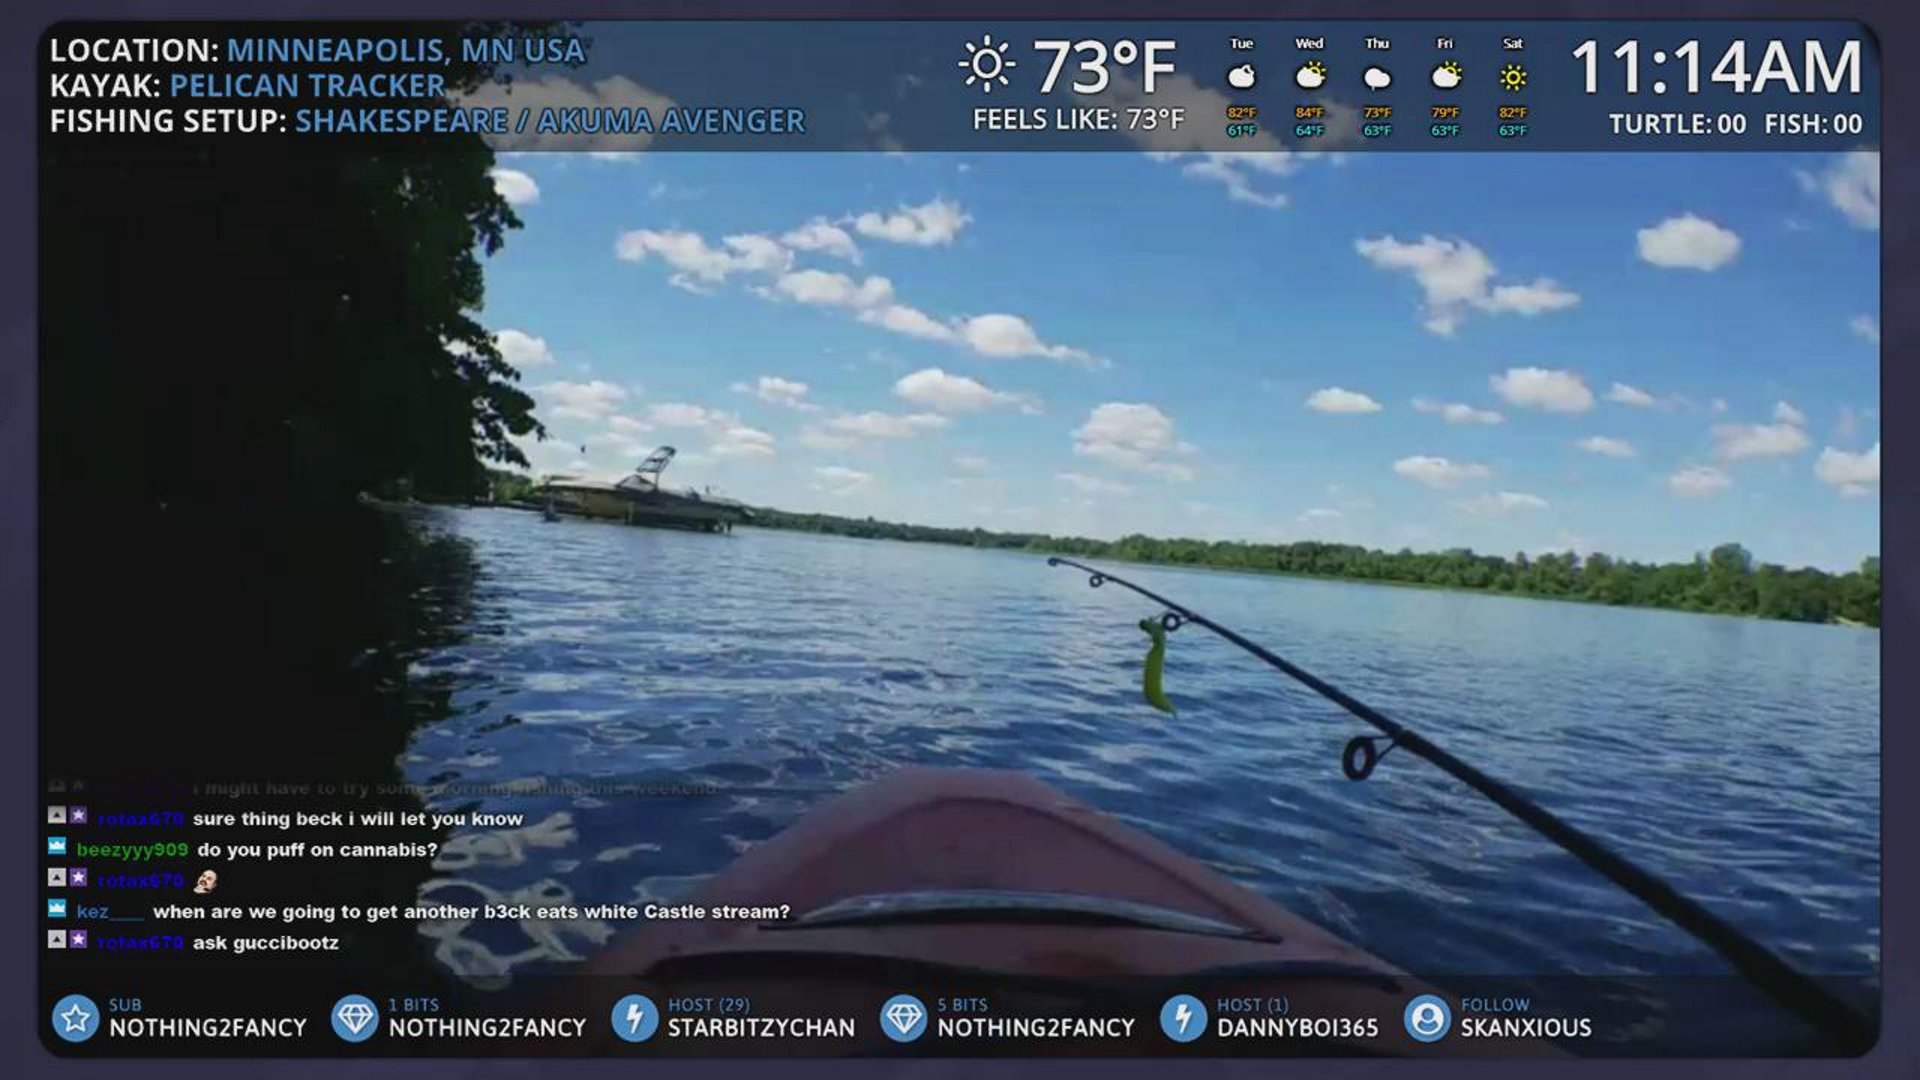 b3ckslife-ep-57-kayak-fishing-with-kjamesn-multi-cmds-irl-0259-https-t-co-4dgkursz0u-https-t-co-usmumtf4nz